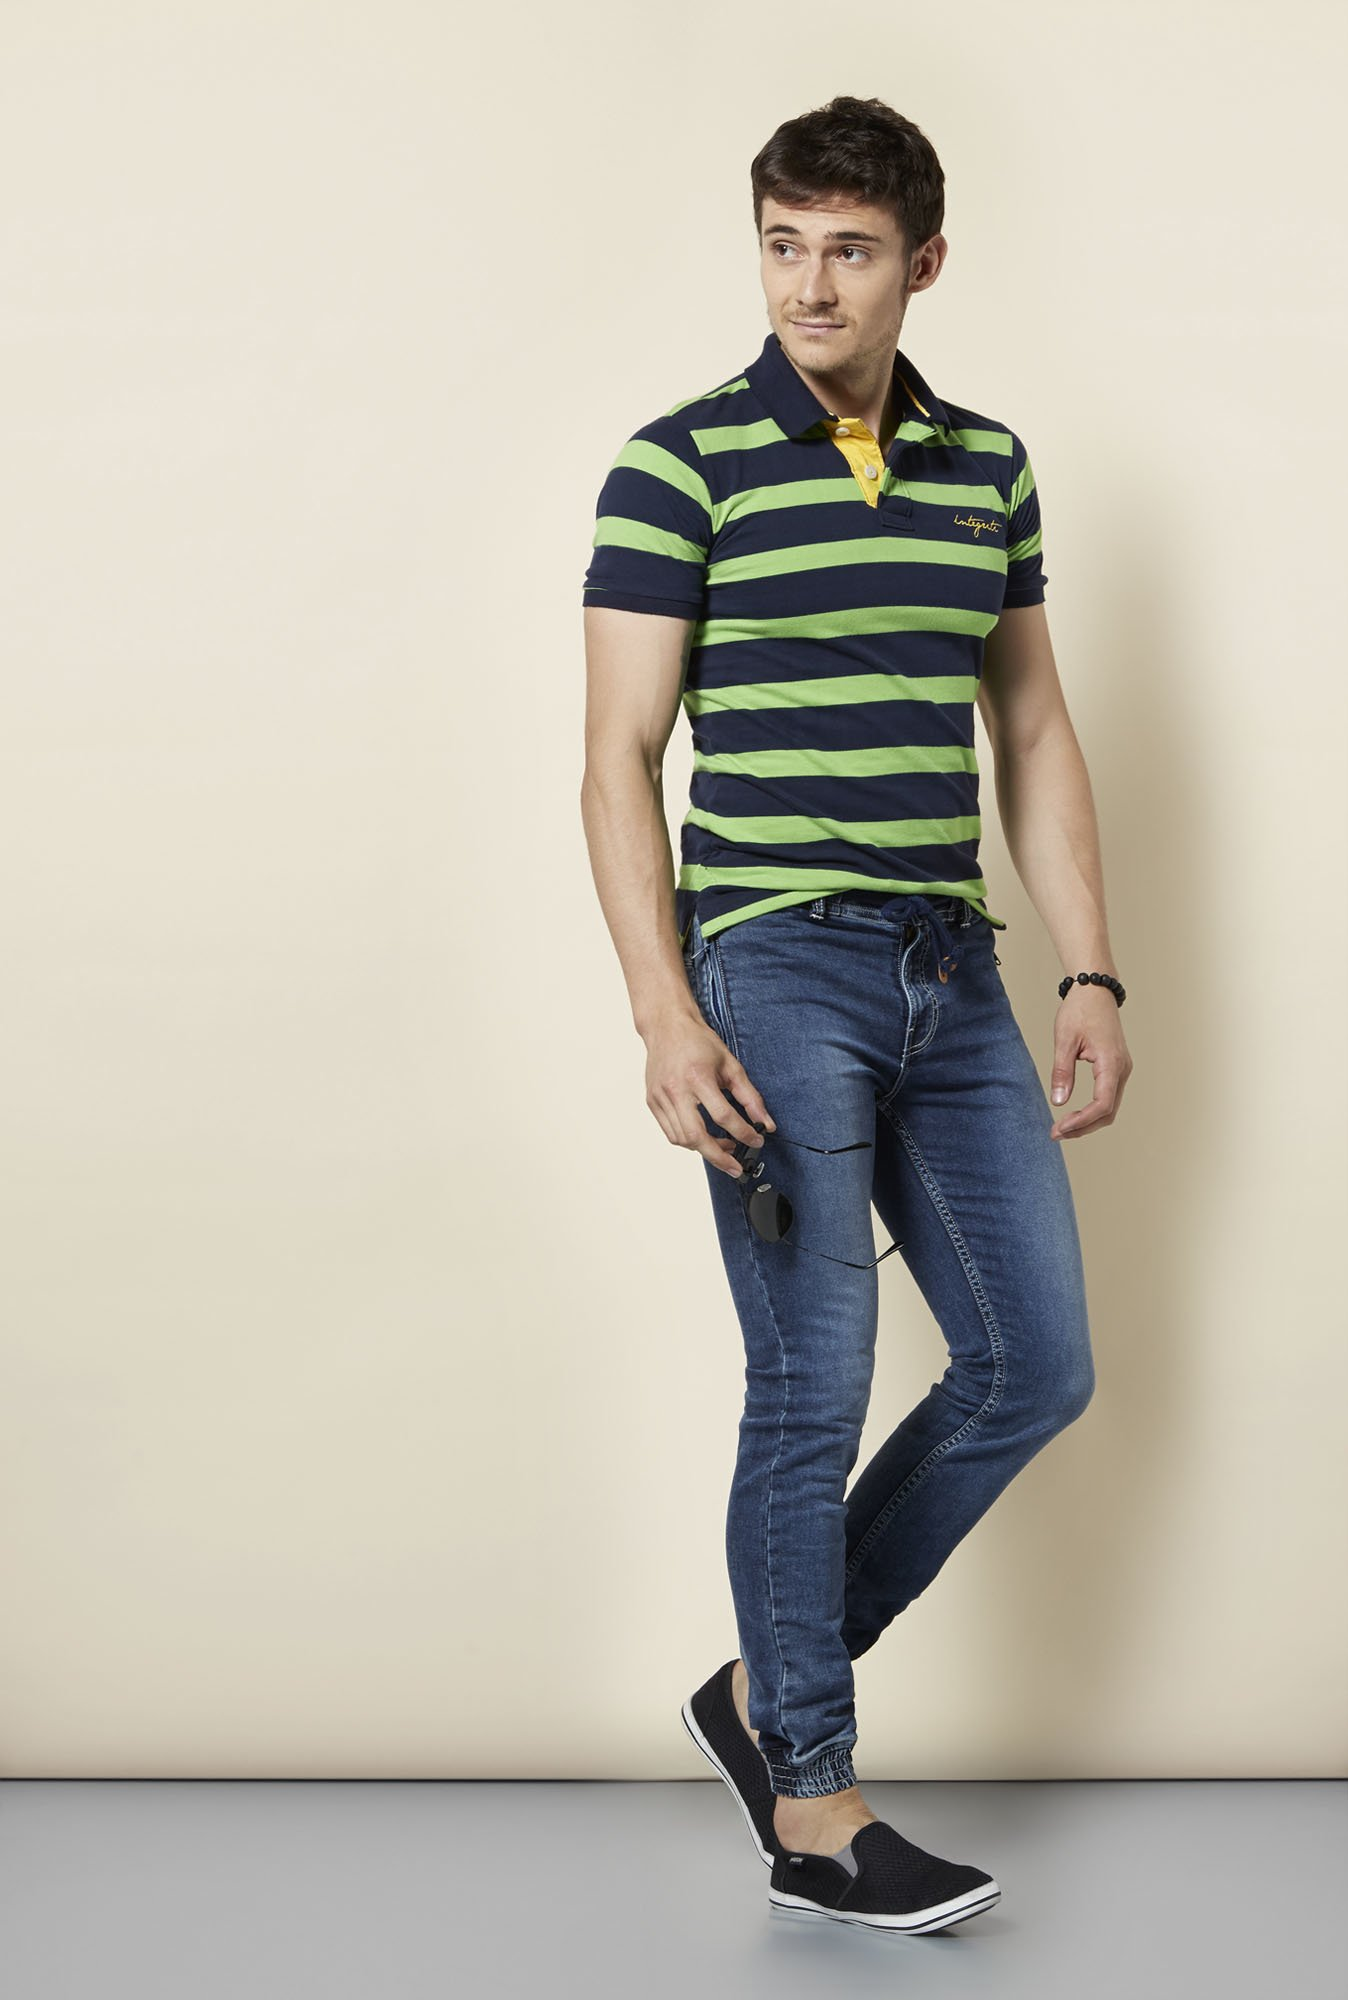 Integriti Green & Navy Striped Polo T Shirt